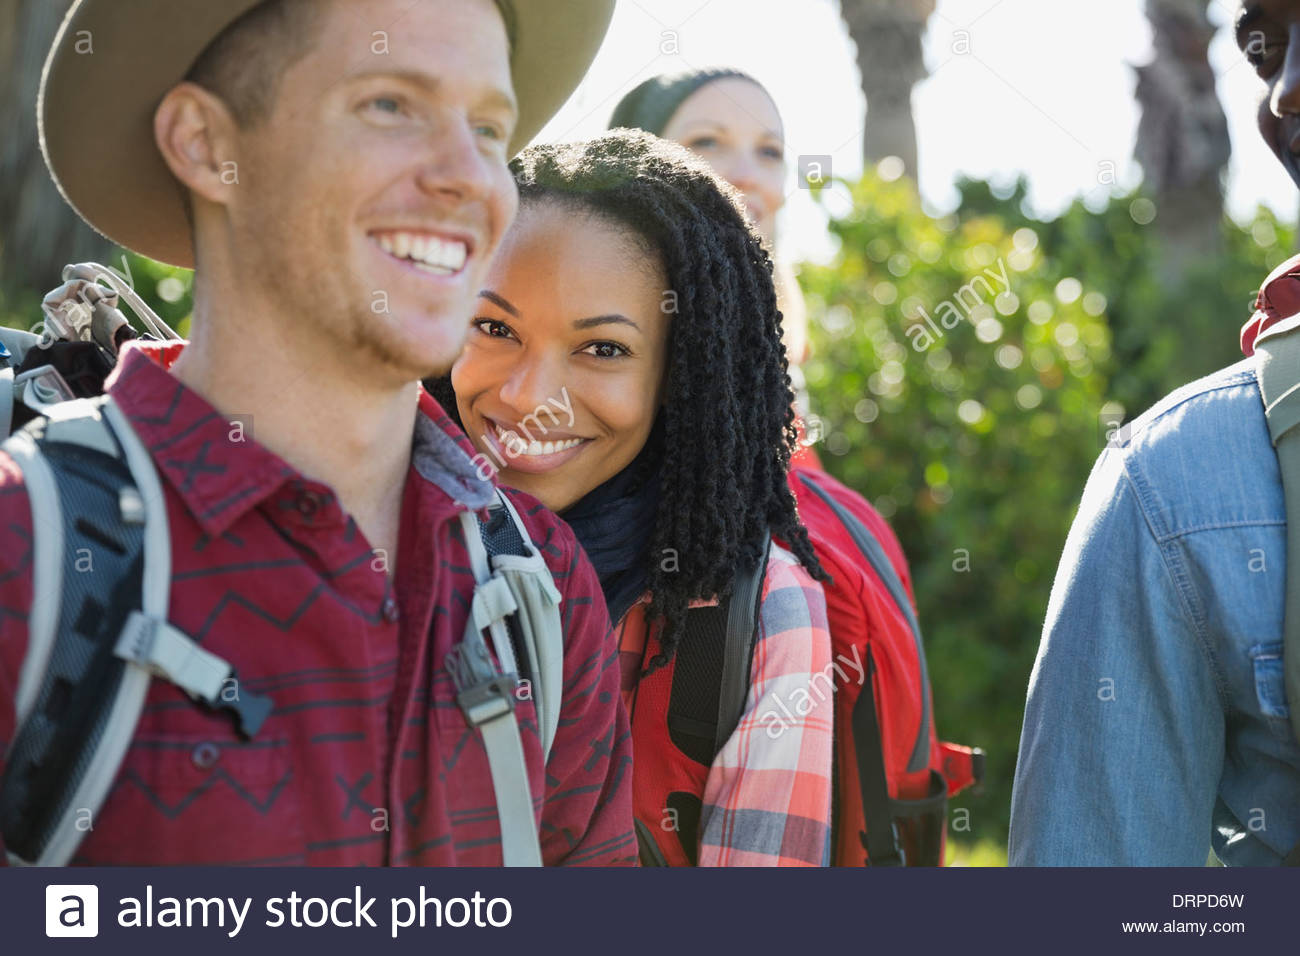 Female backpacker with friends outdoors - Stock Image